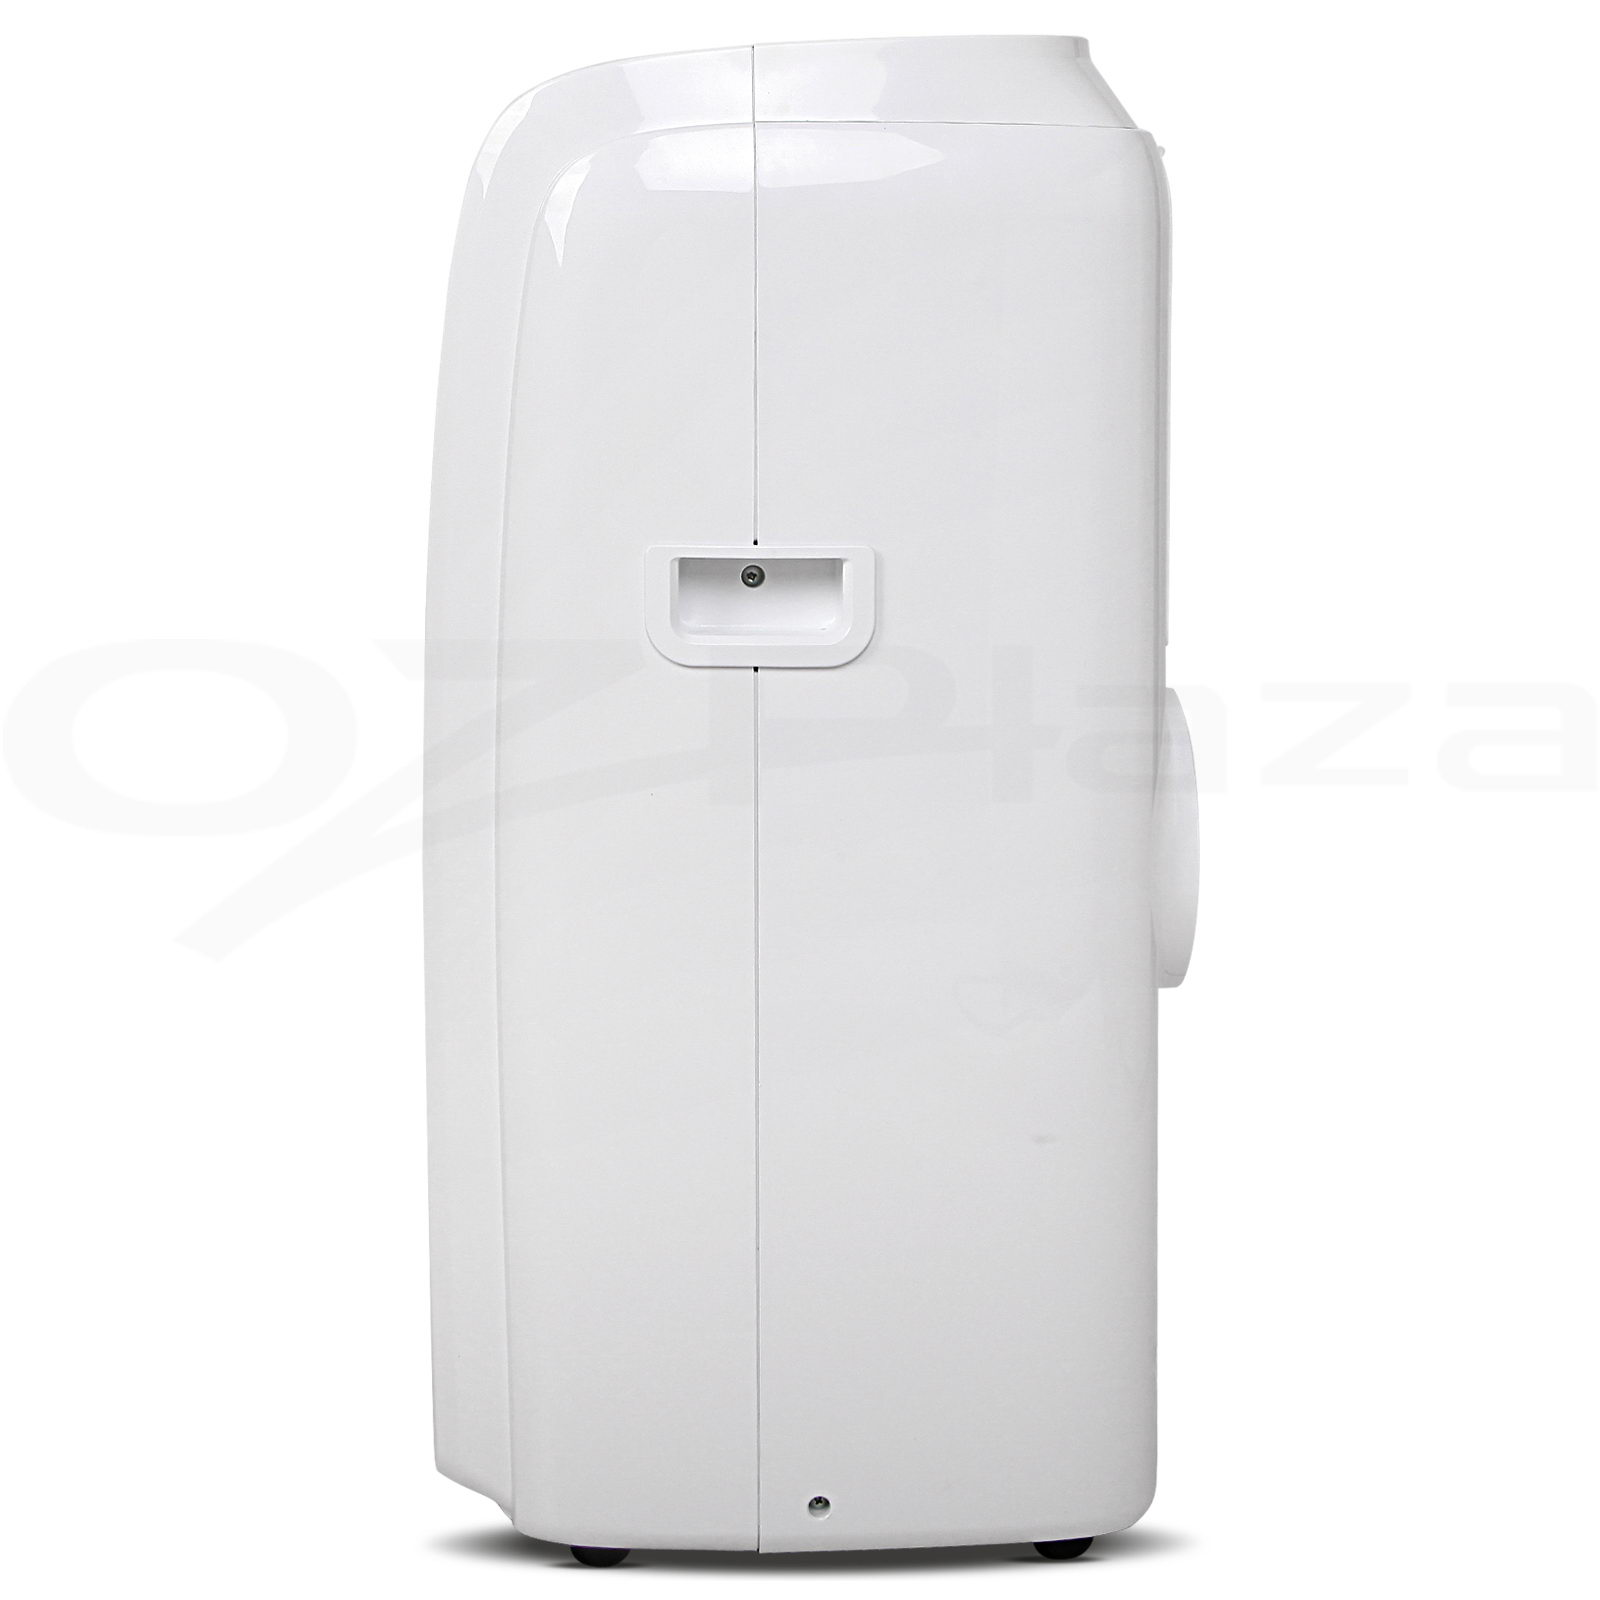 #514B5C Devanti Portable AIR Conditioner 4 4KW Peak Cooling FAN  Top of The Line 13674 Portable Water Cooled Air Conditioner picture with 1600x1600 px on helpvideos.info - Air Conditioners, Air Coolers and more